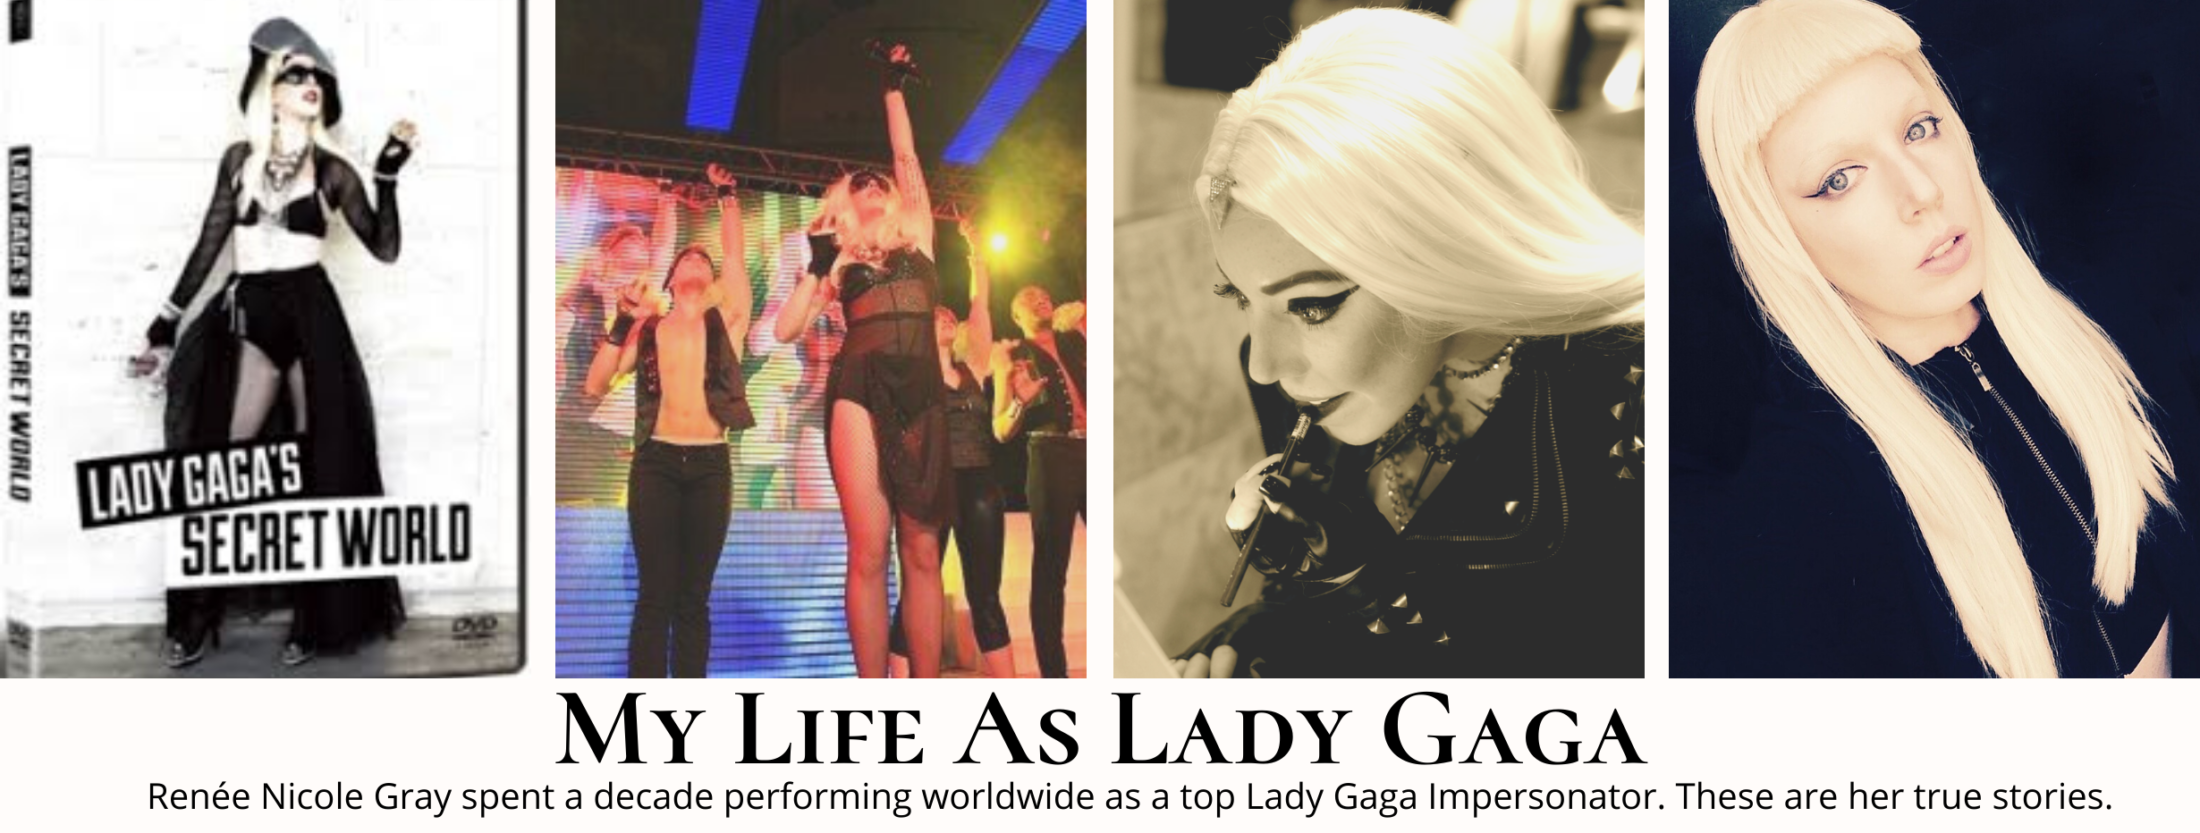 My Life As Lady Gaga